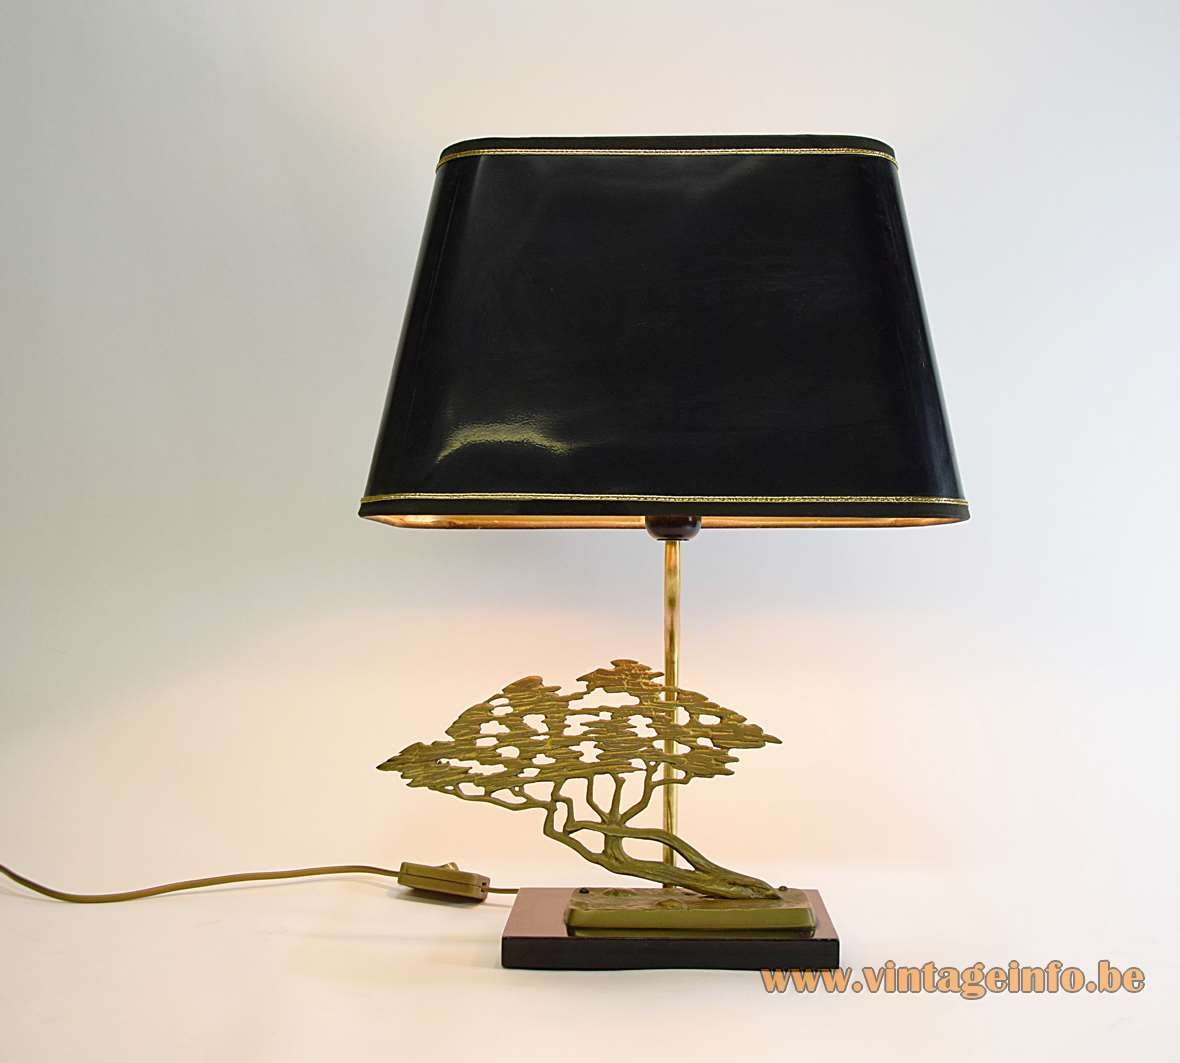 Bonsai table lamp brass bronze black wood Willy Daro Massive Hollywood Regency 1970s 1980s MCM